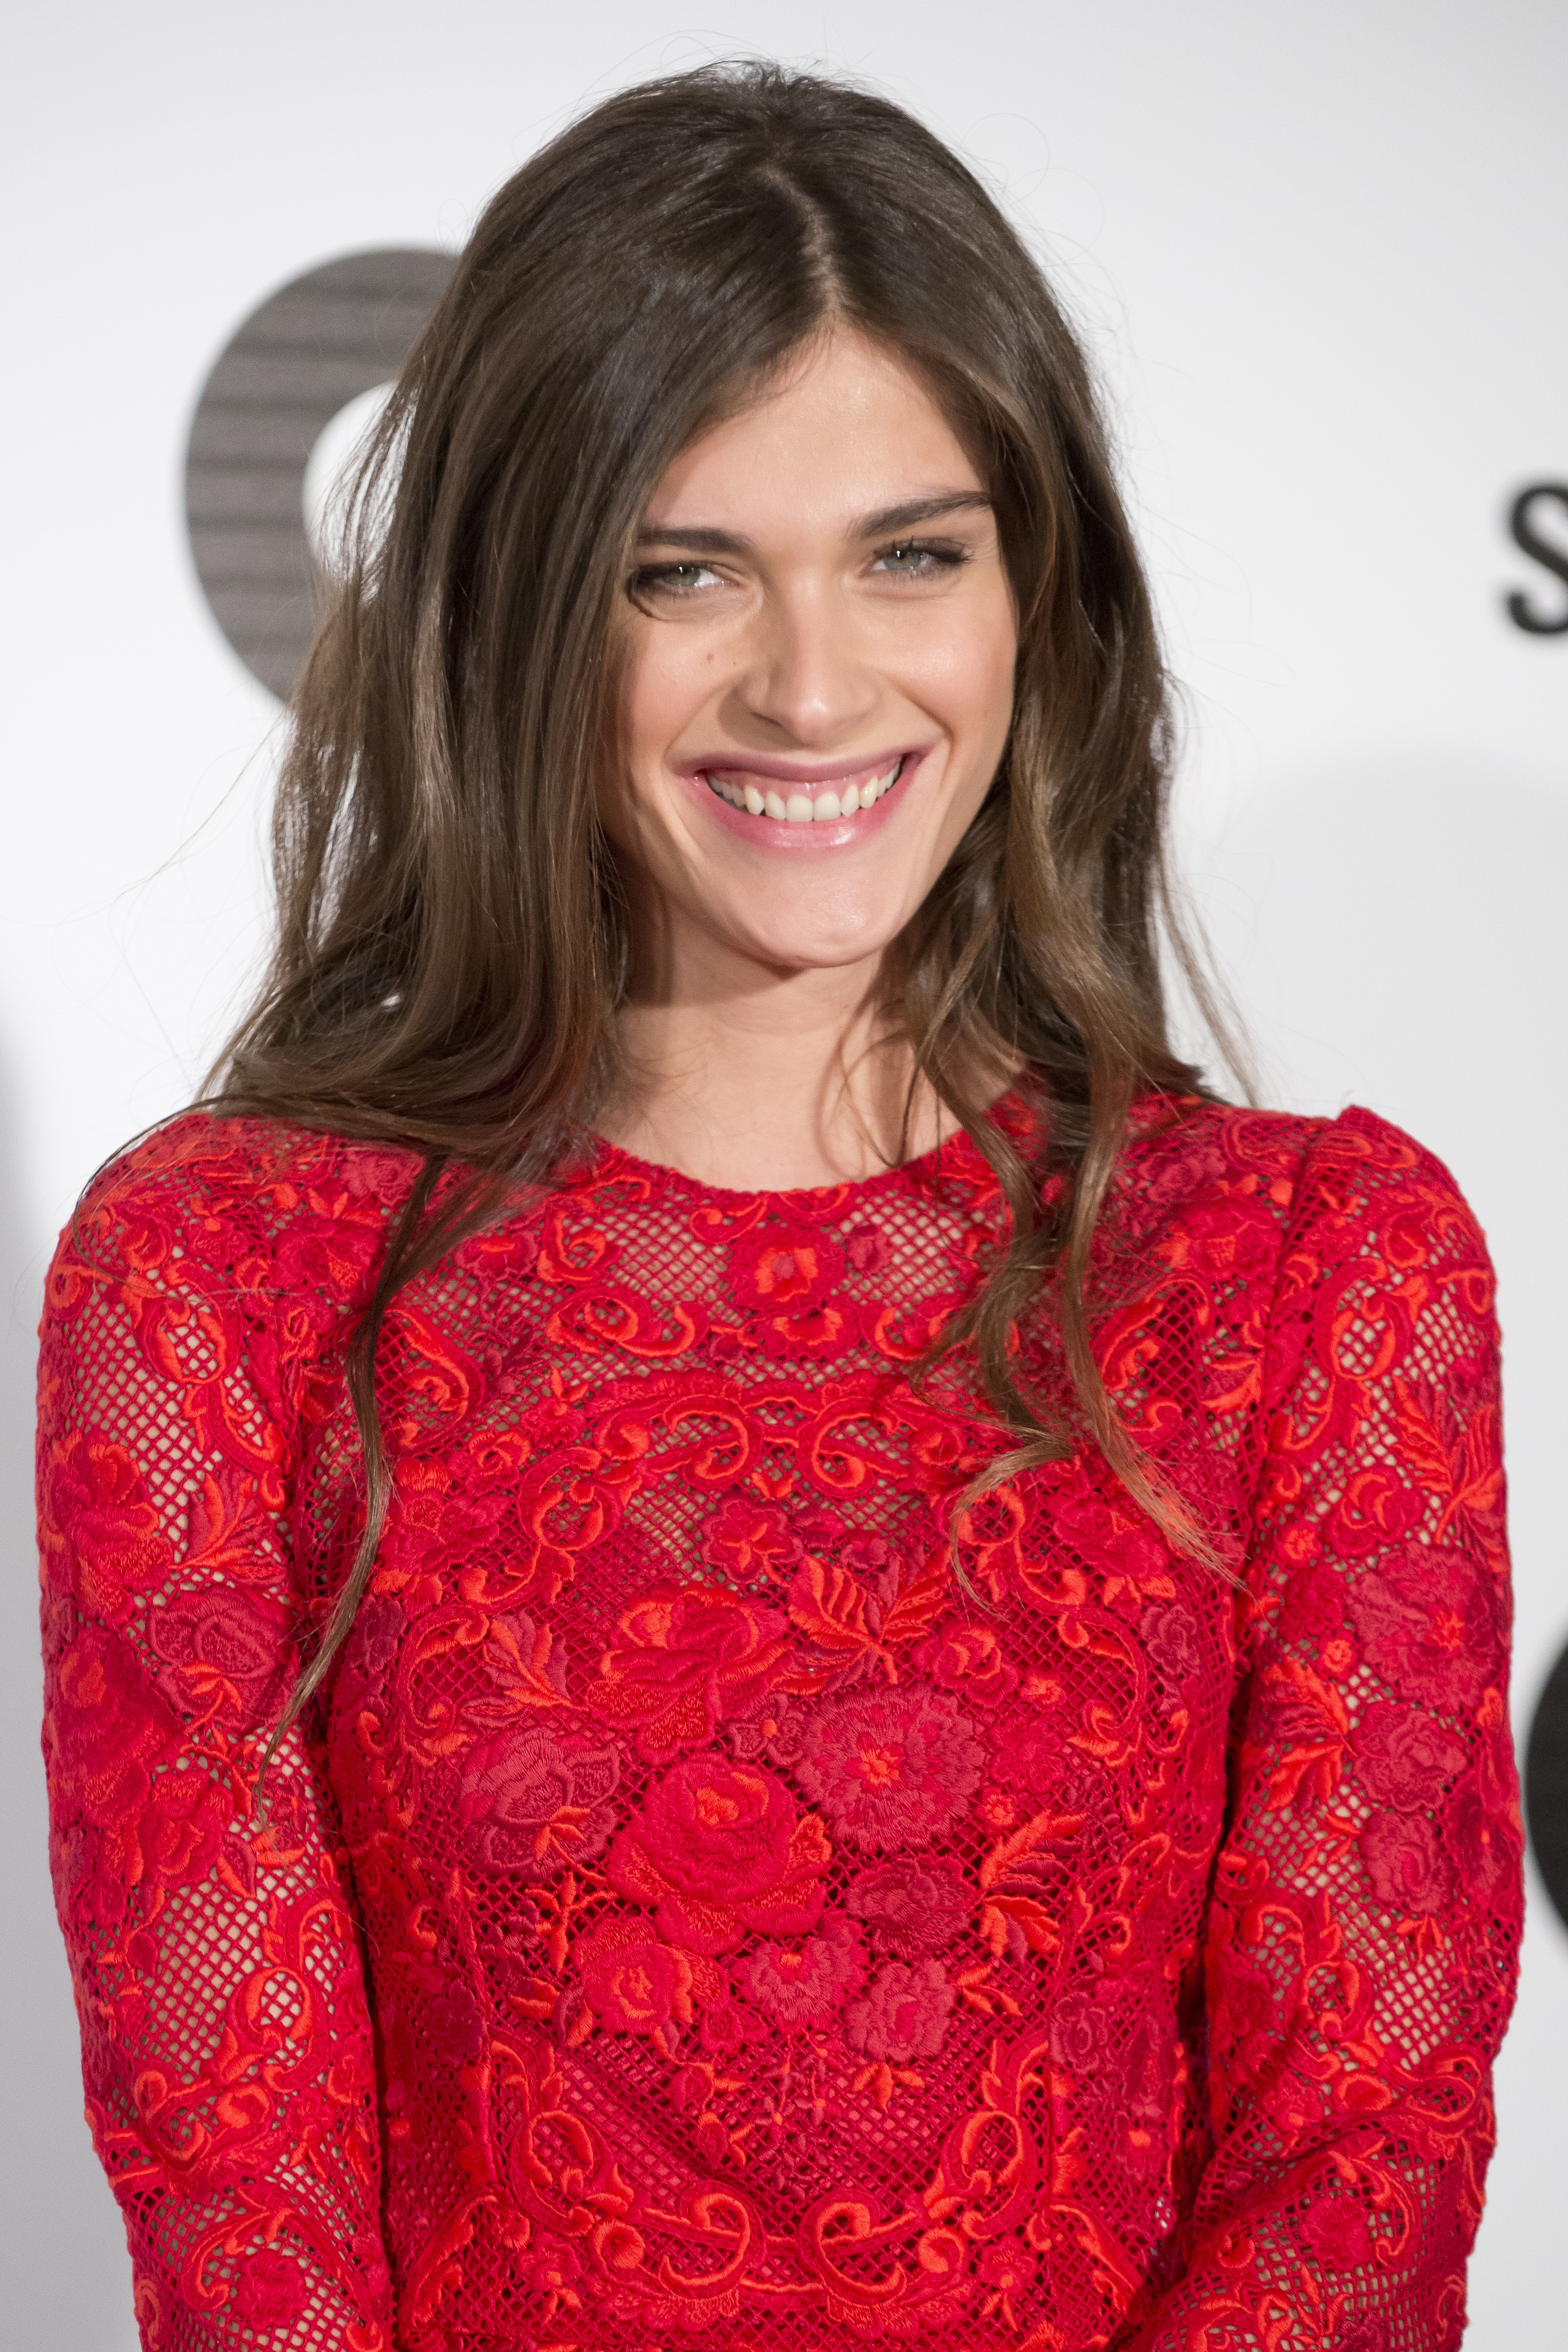 French model, actress, and It-girl Elisa Sednaoui (WENN)